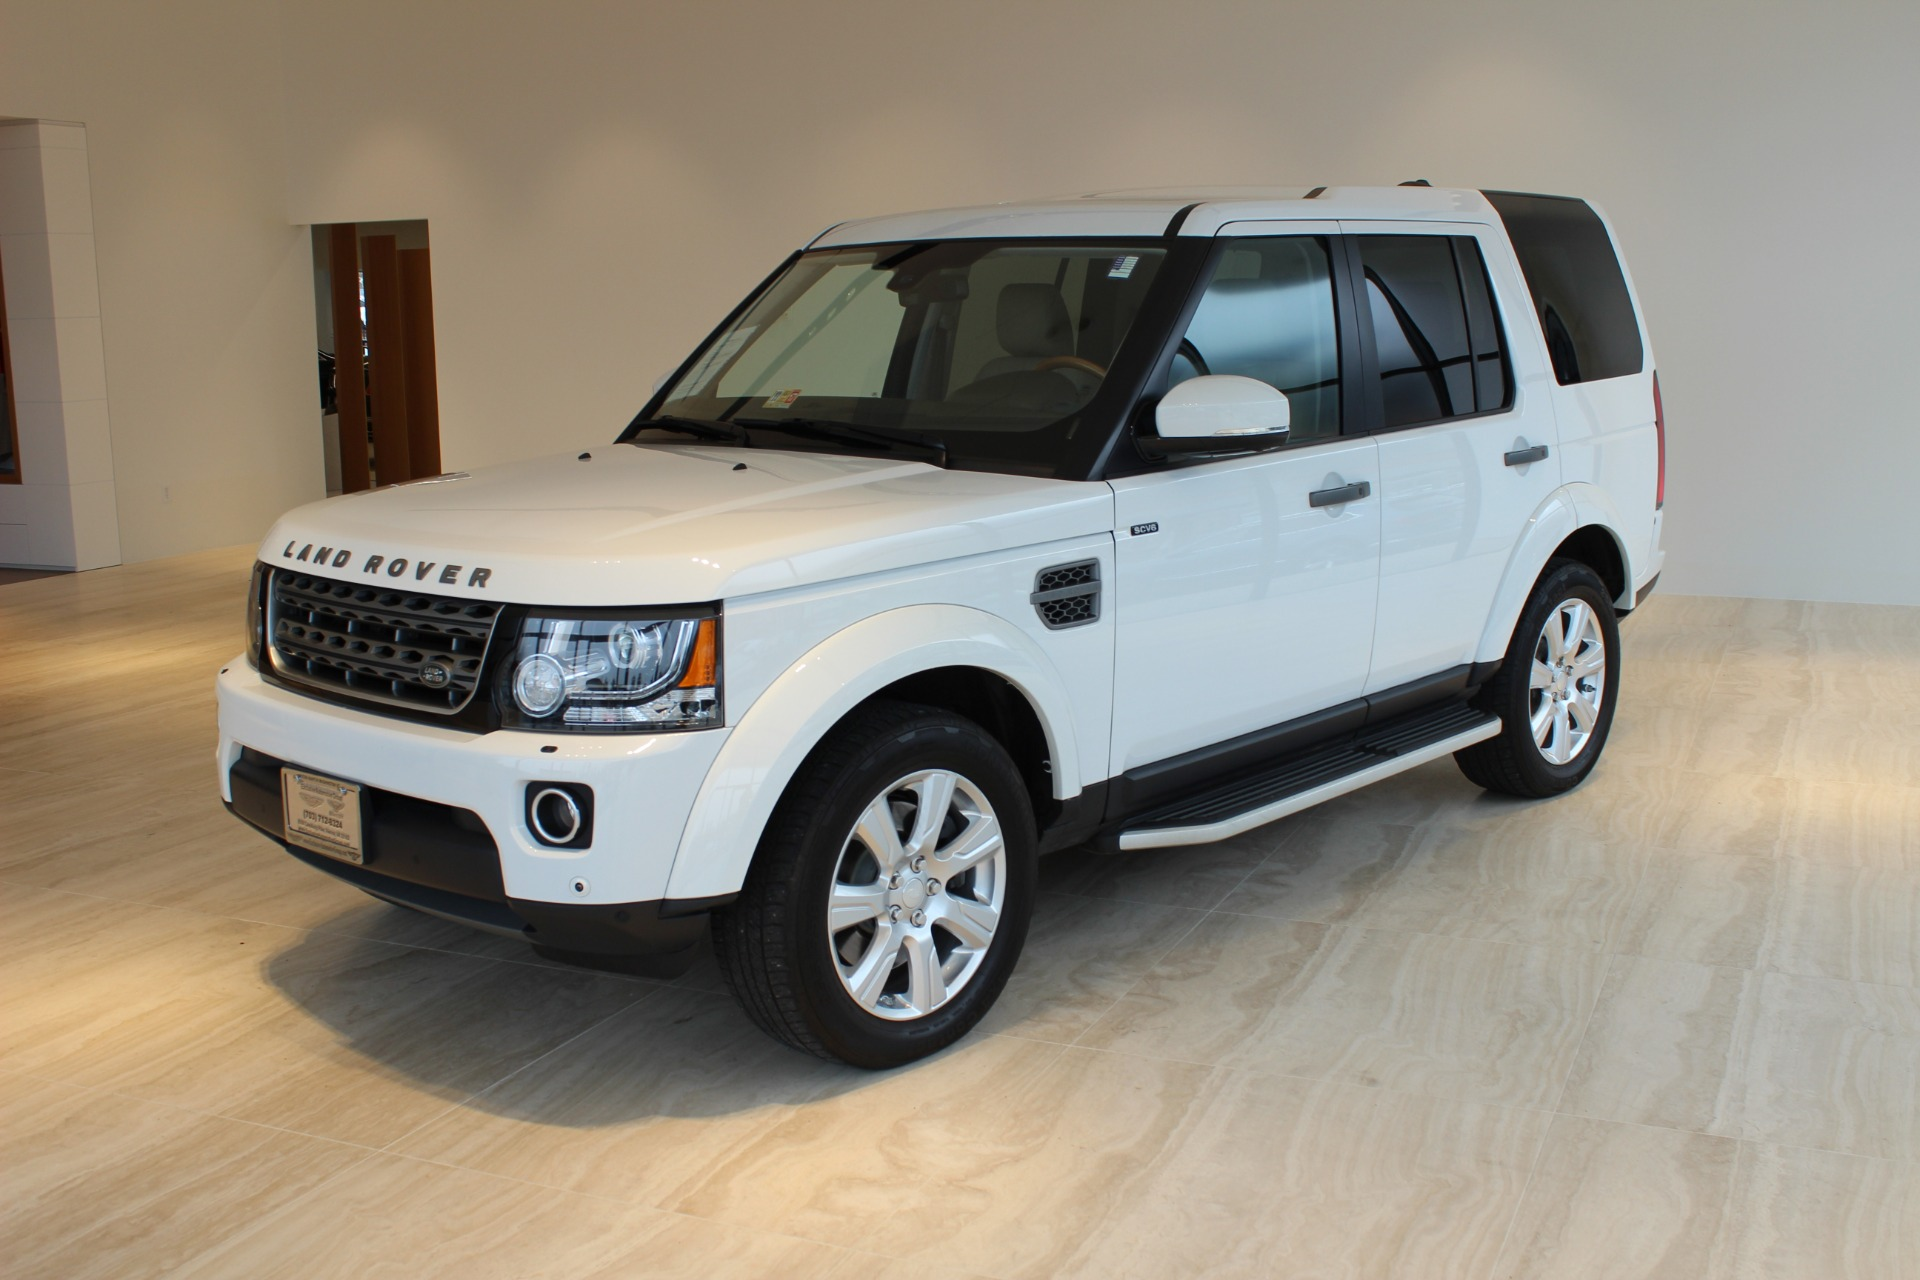 motors listings shoneez options other landrover vehicle comments rover technical features overview land lease specifications